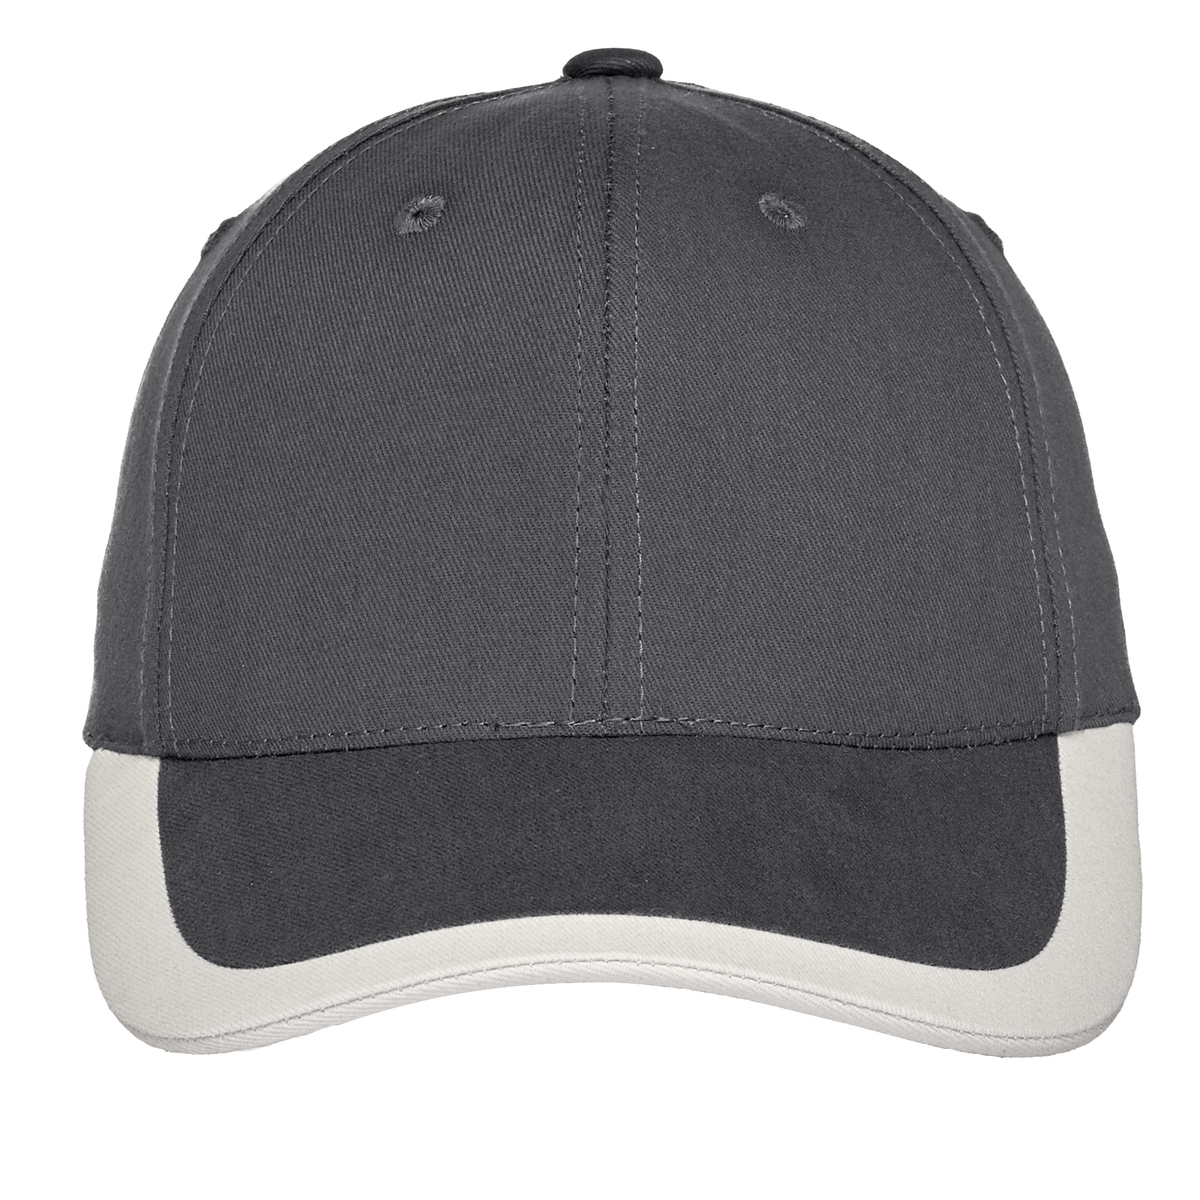 2a696391 Port Authority® Contrast Stripe Sandwich Bill Cap | Twill | Caps ...